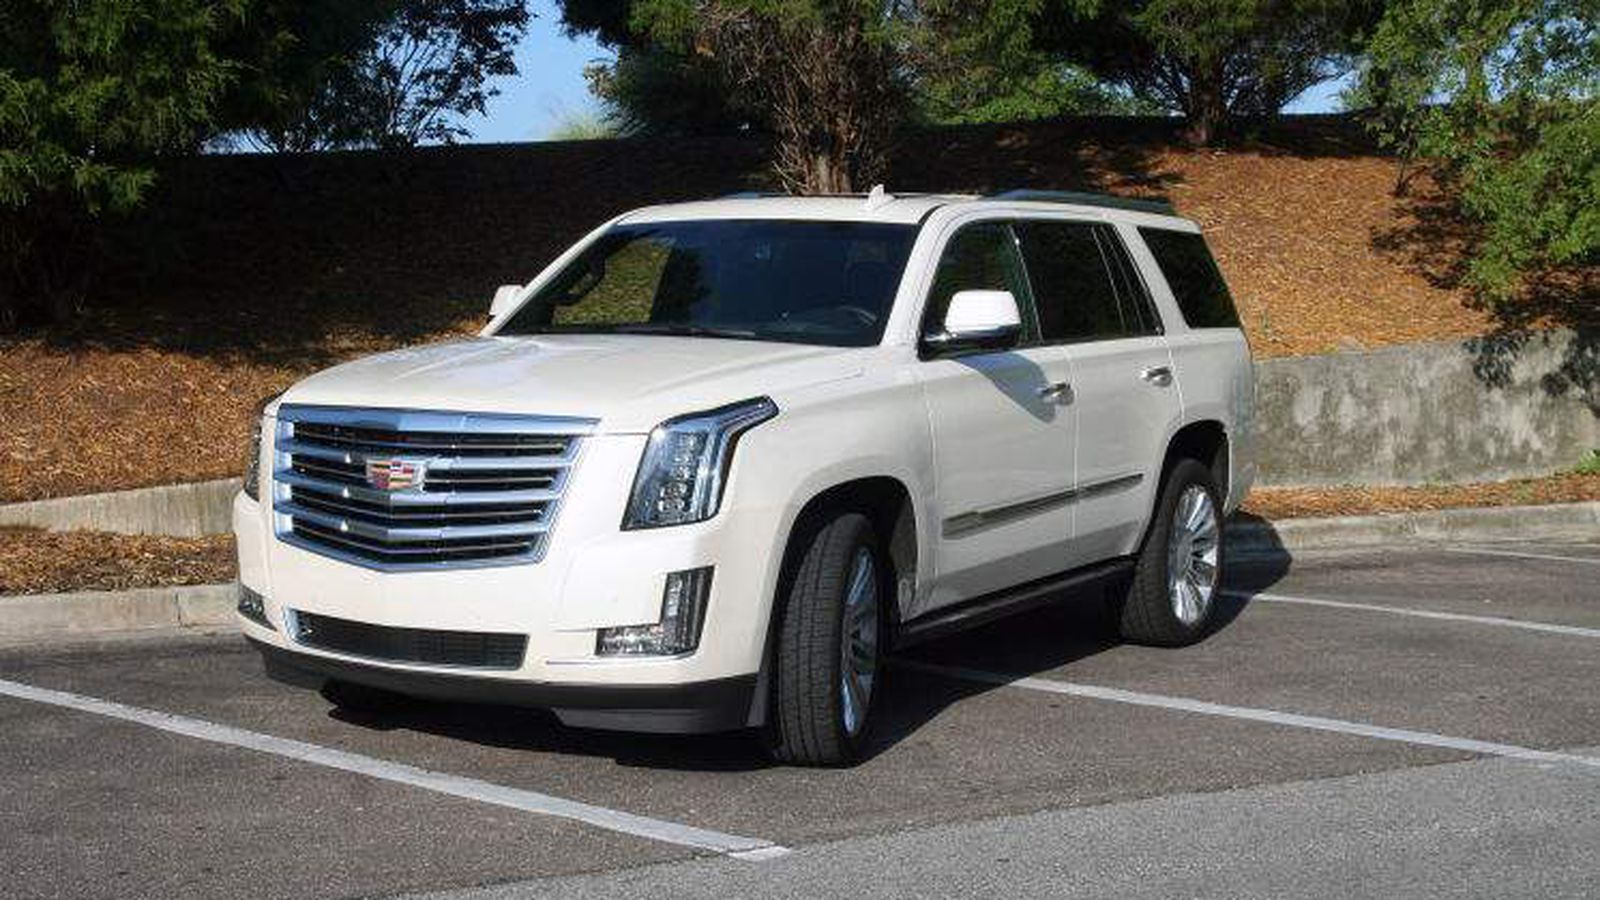 The Daily Drivers 2015 Cadillac Escalade 4wd Platinum